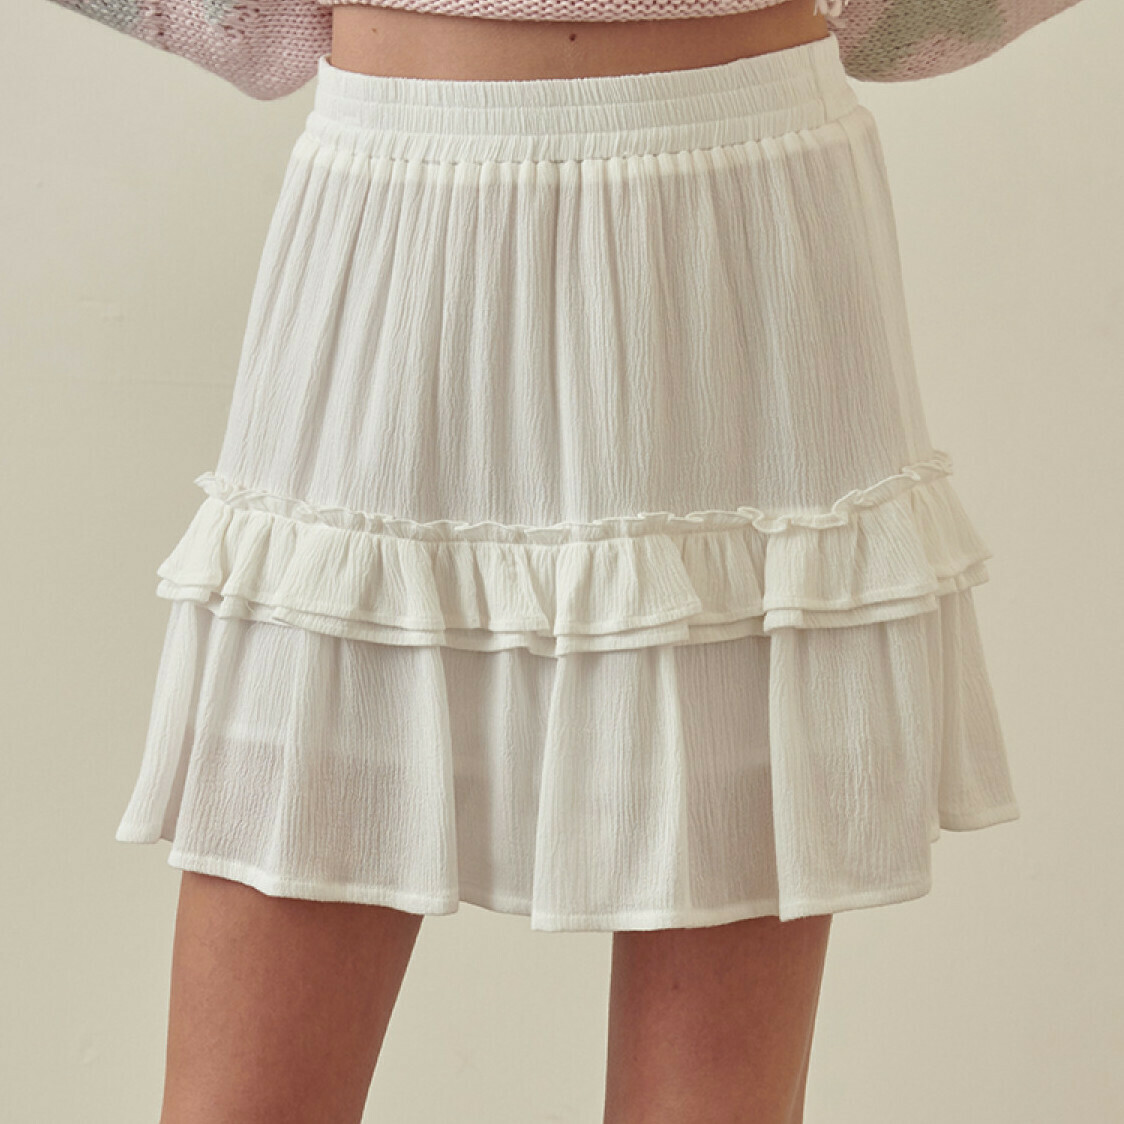 *All Day Layered Skirt - JS2635